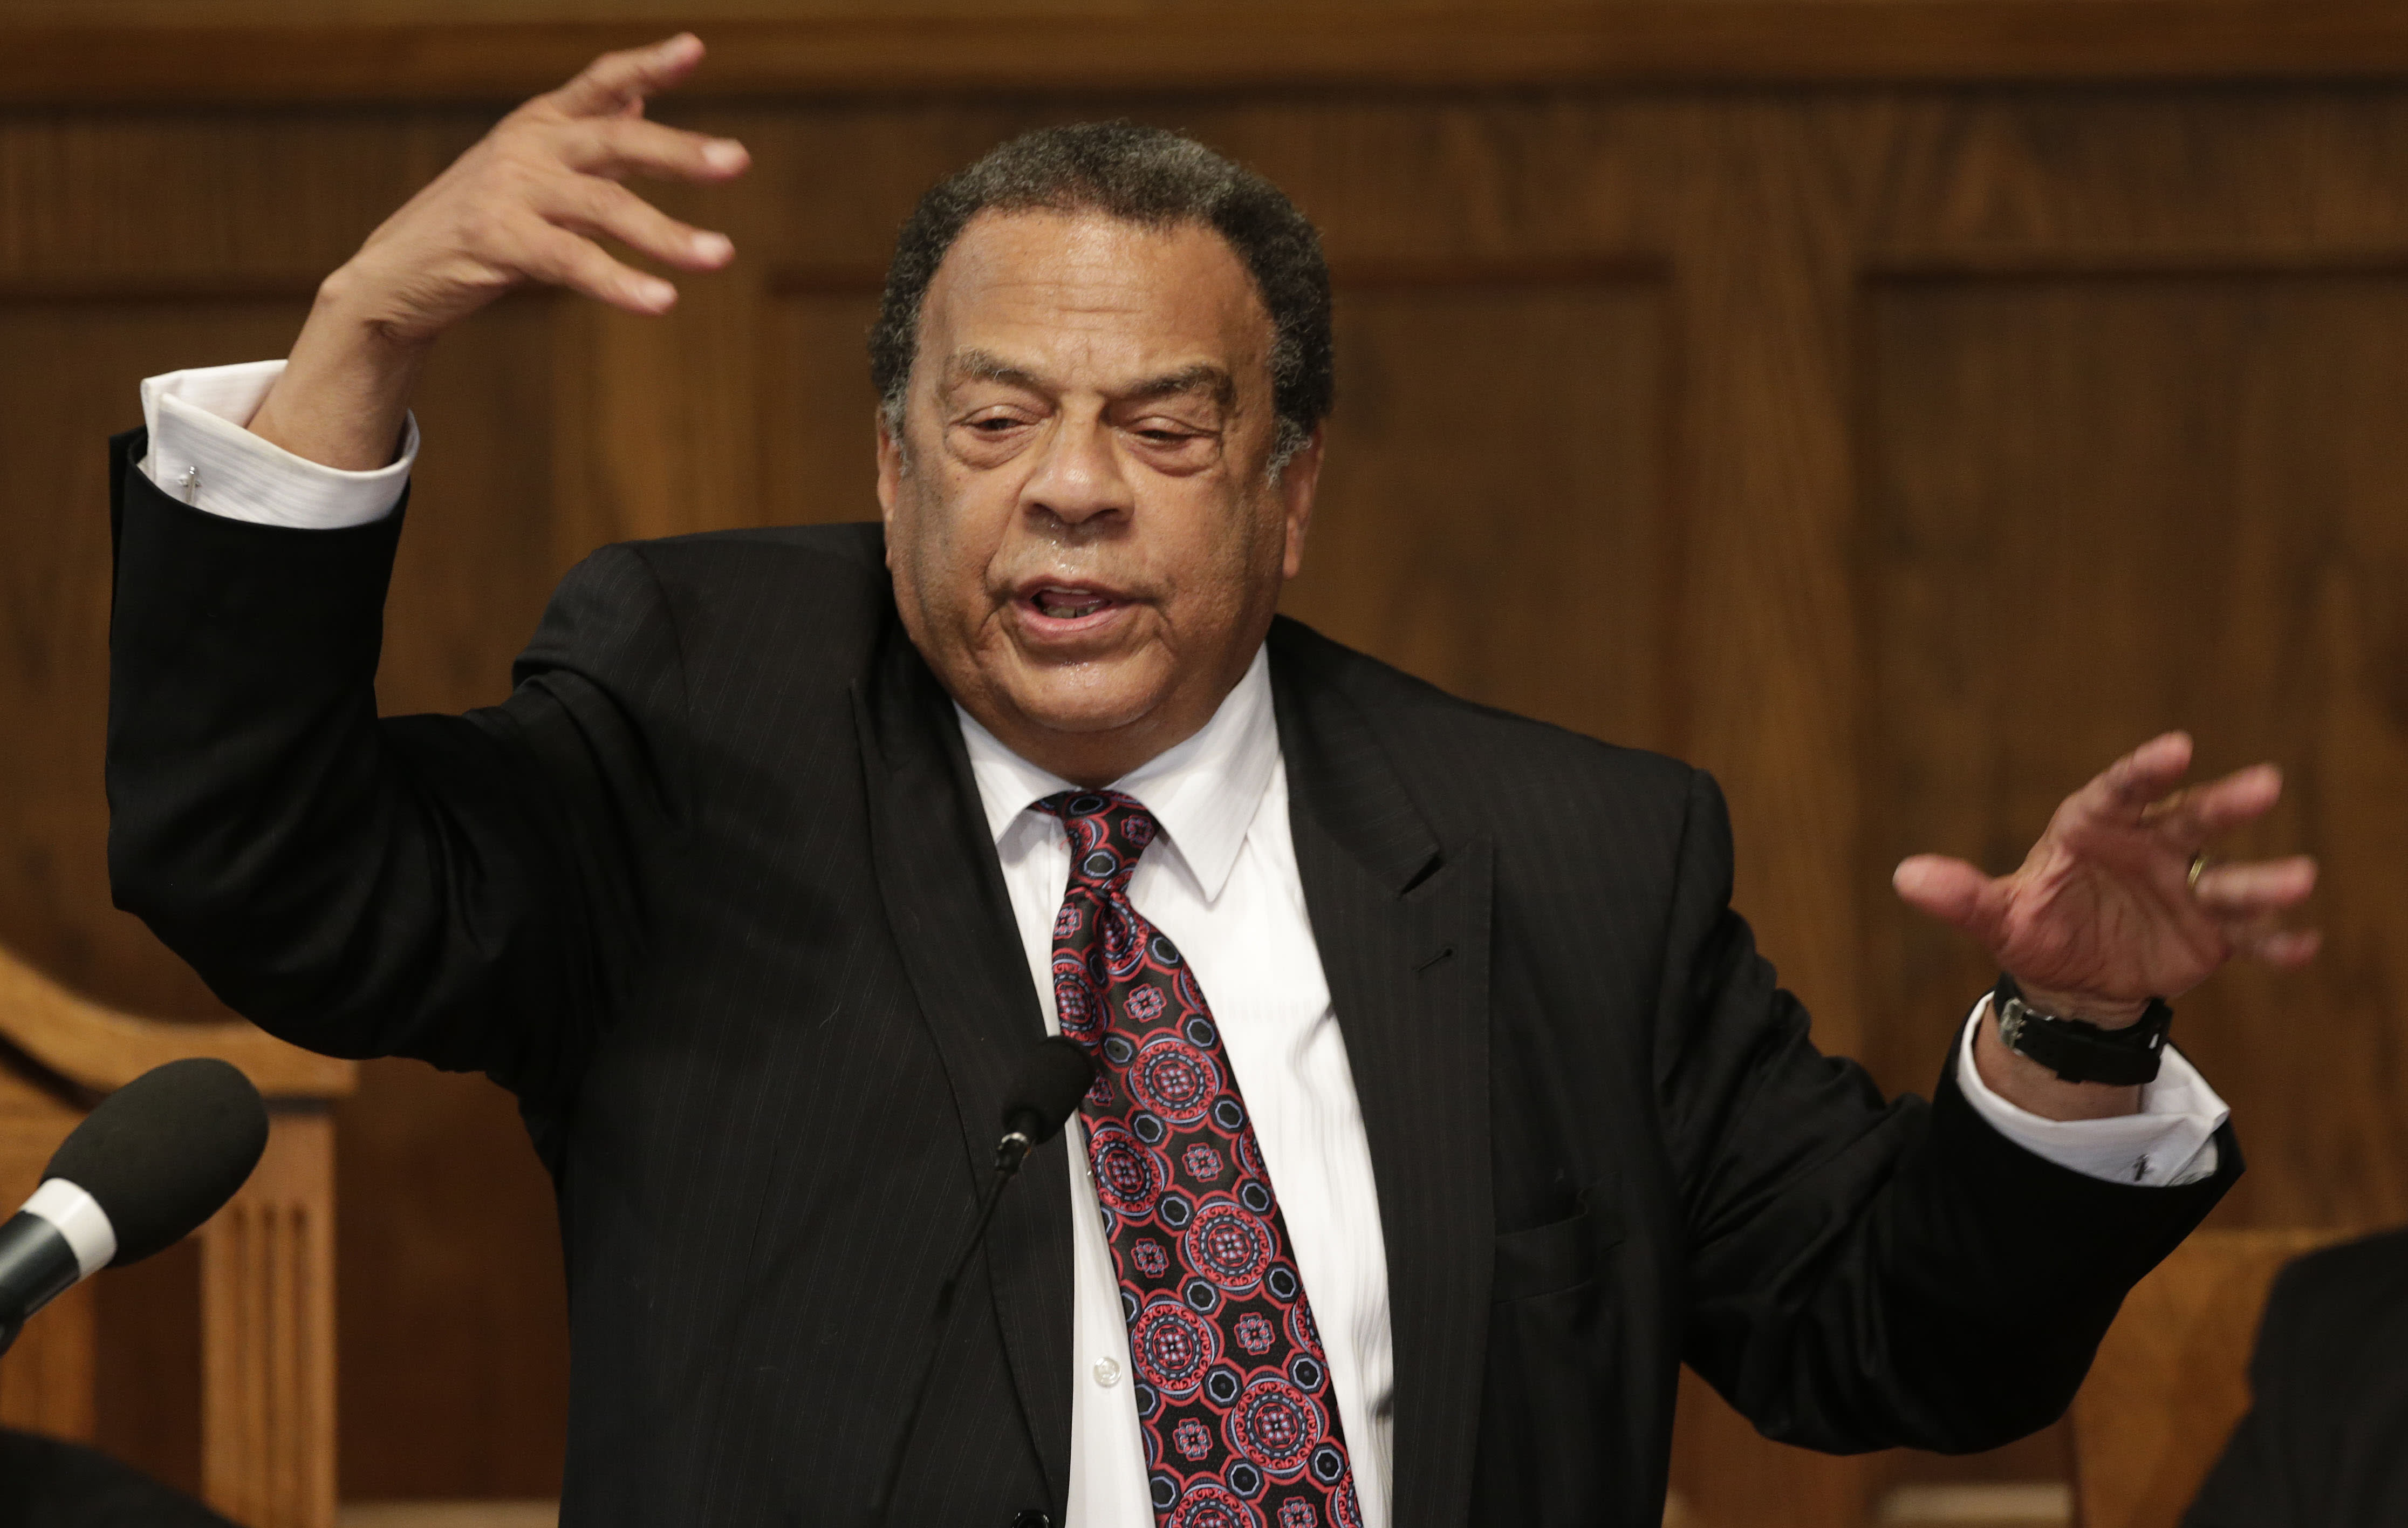 Former UN ambassador Andrew Young addresses the congregation at the 16th Street Baptist Church in Birmingham, Ala., Sunday, Sept. 15, 2013. The church held a ceremony honoring the memory of the four young girls who were killed by a bomb placed outside the church 50 years ago by members of the Ku Klux Klan. (AP Photo/Dave Martin)